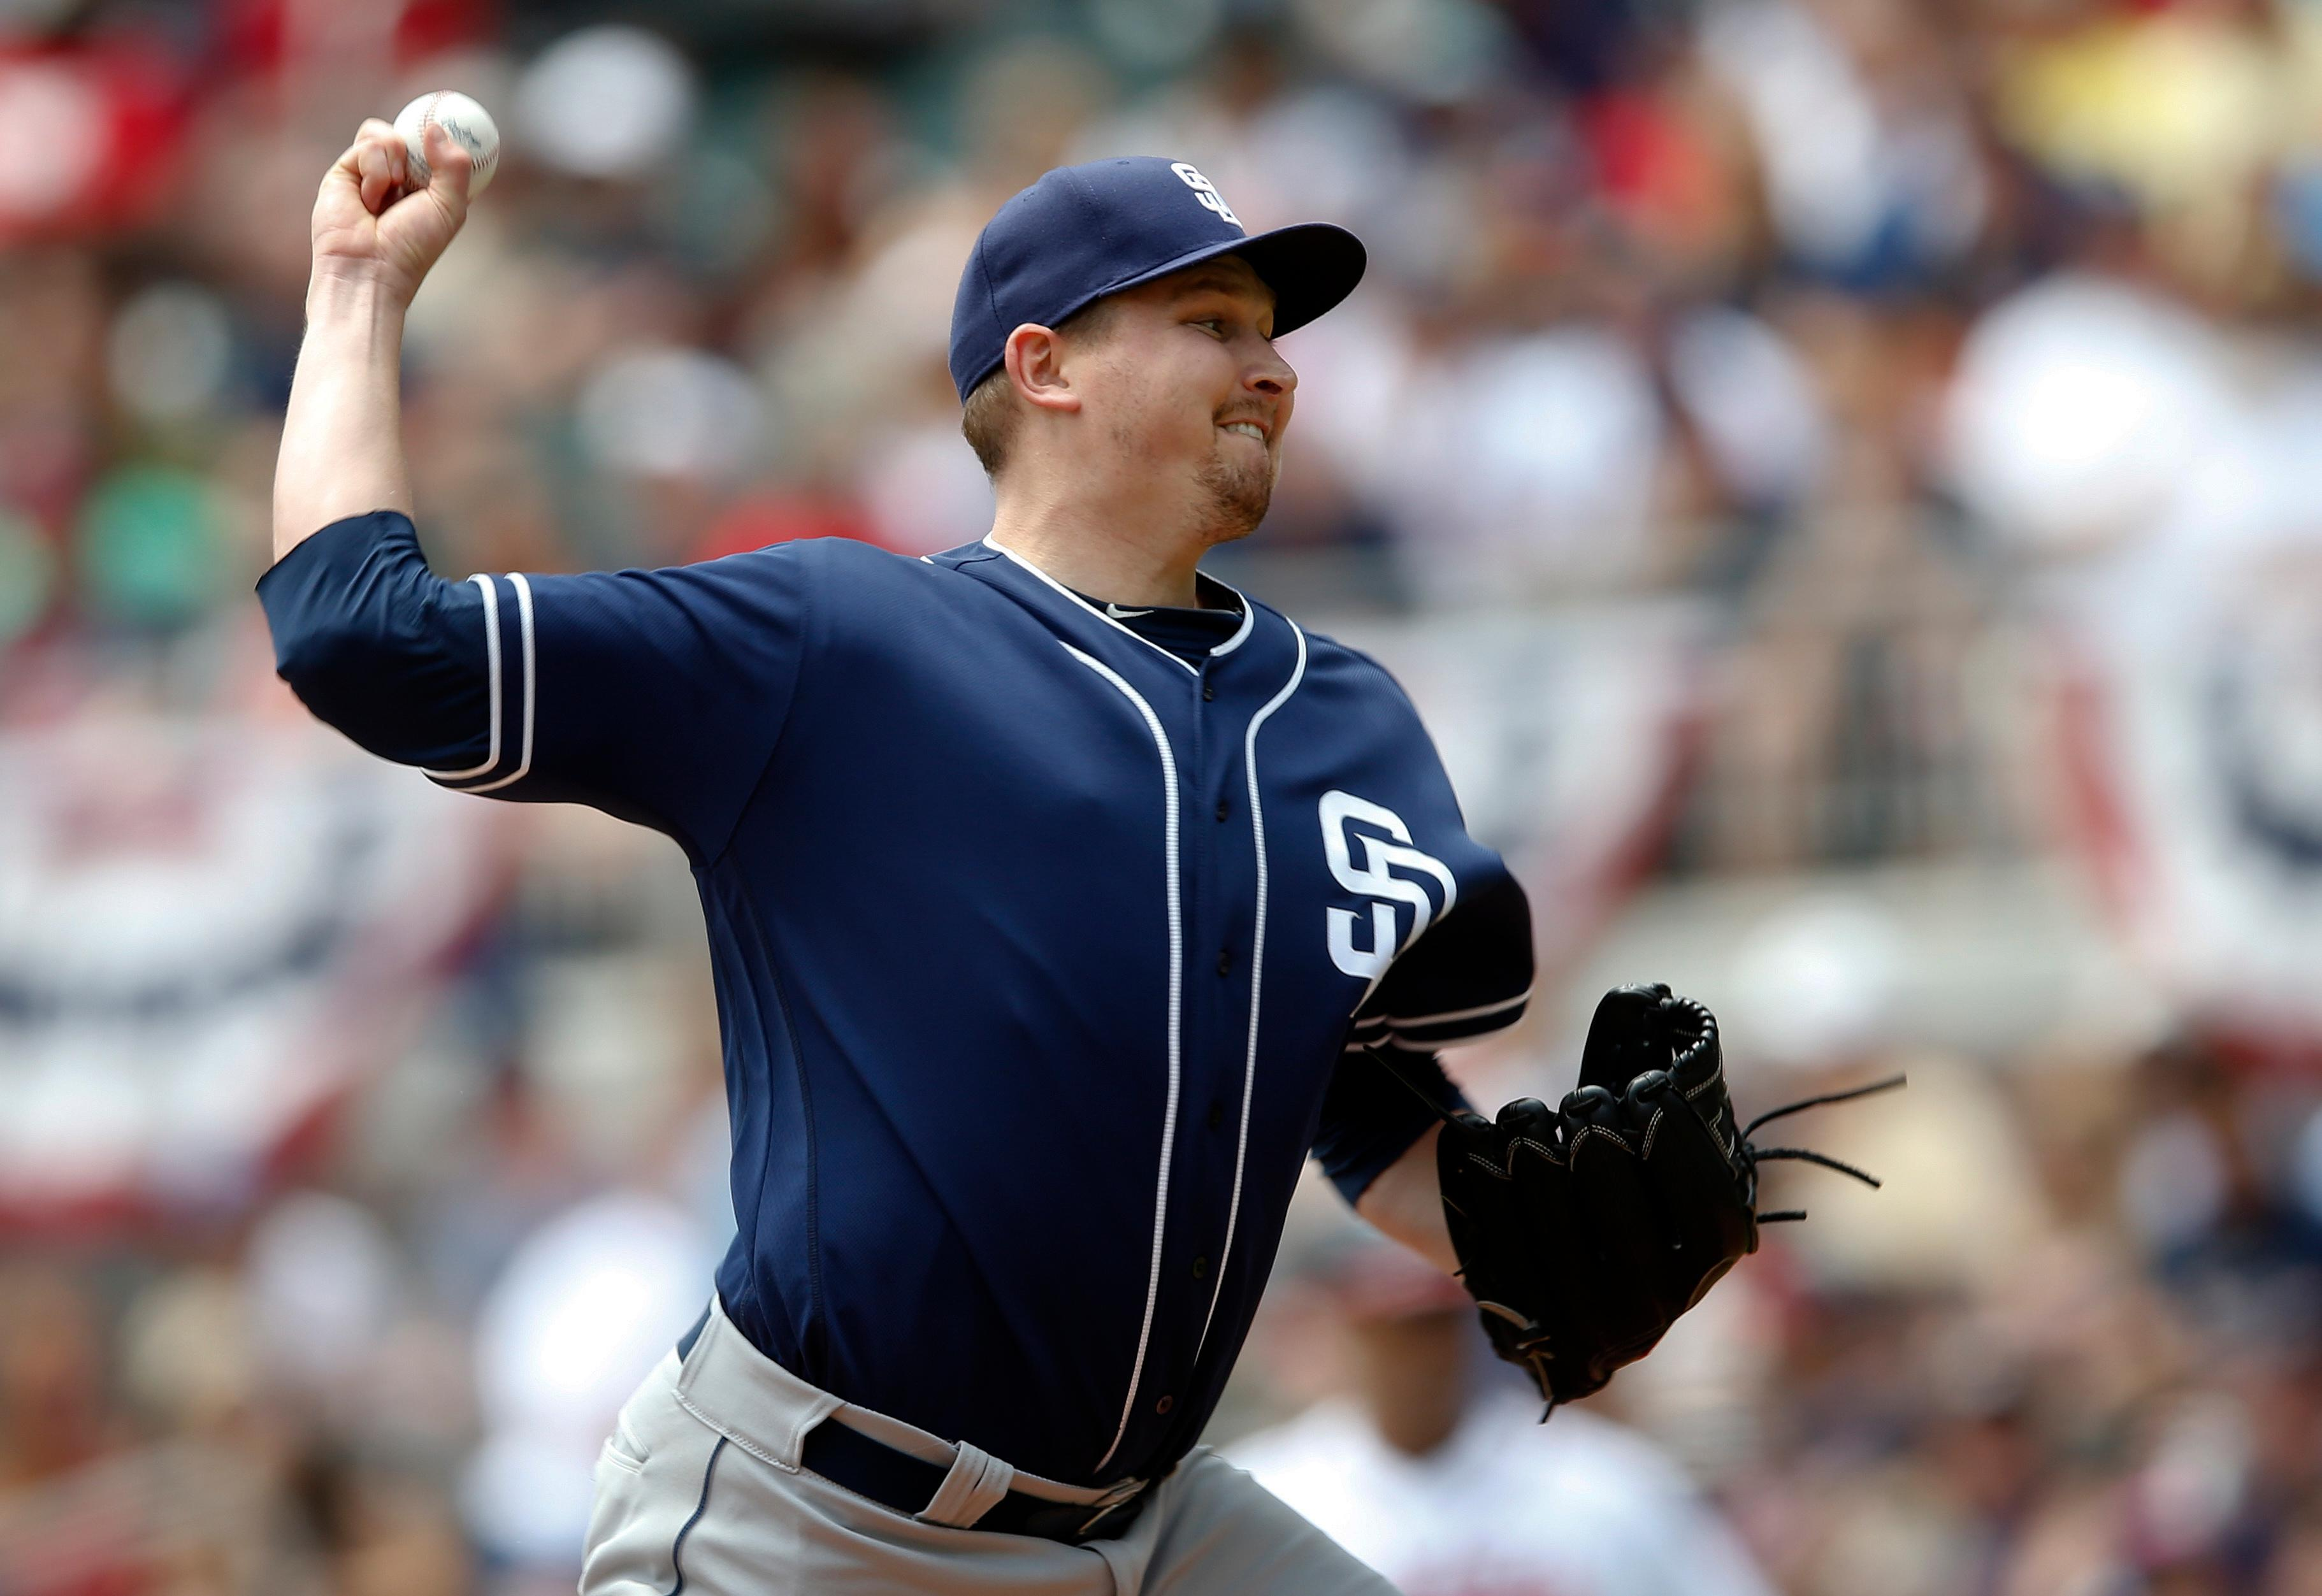 San Diego Padres starting pitcher Trevor Cahill throws against the Atlanta Braves in the first inning of a baseball game Sunday, April 16, 2017, in Atlanta. (AP Photo/John Bazemore)